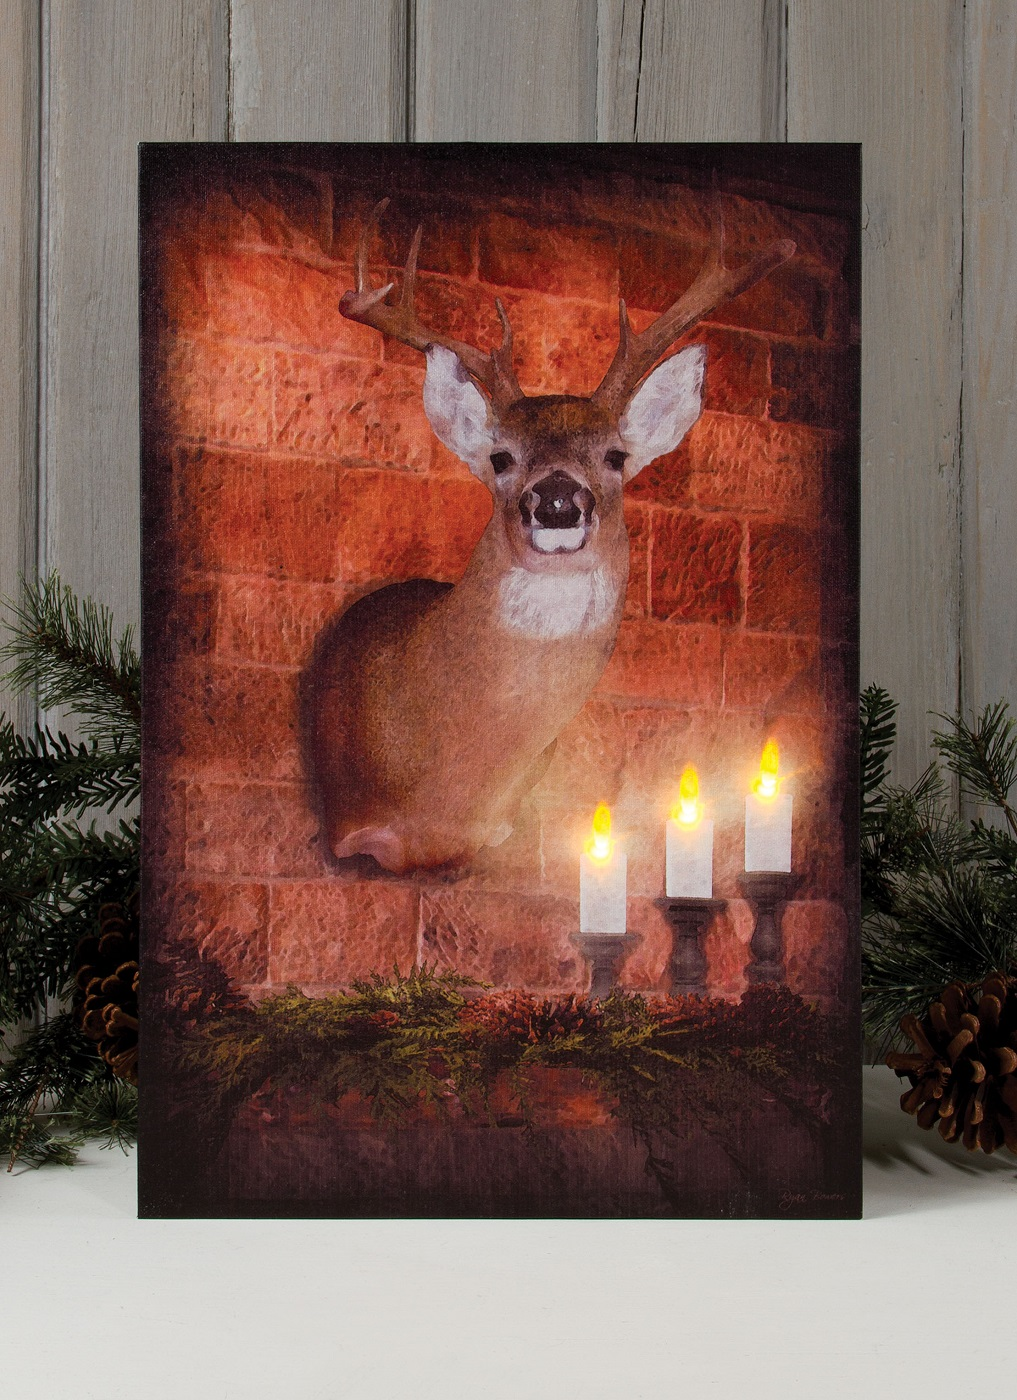 Radiance Lighted Canvas by Ohio Wholesale Mounted Deer